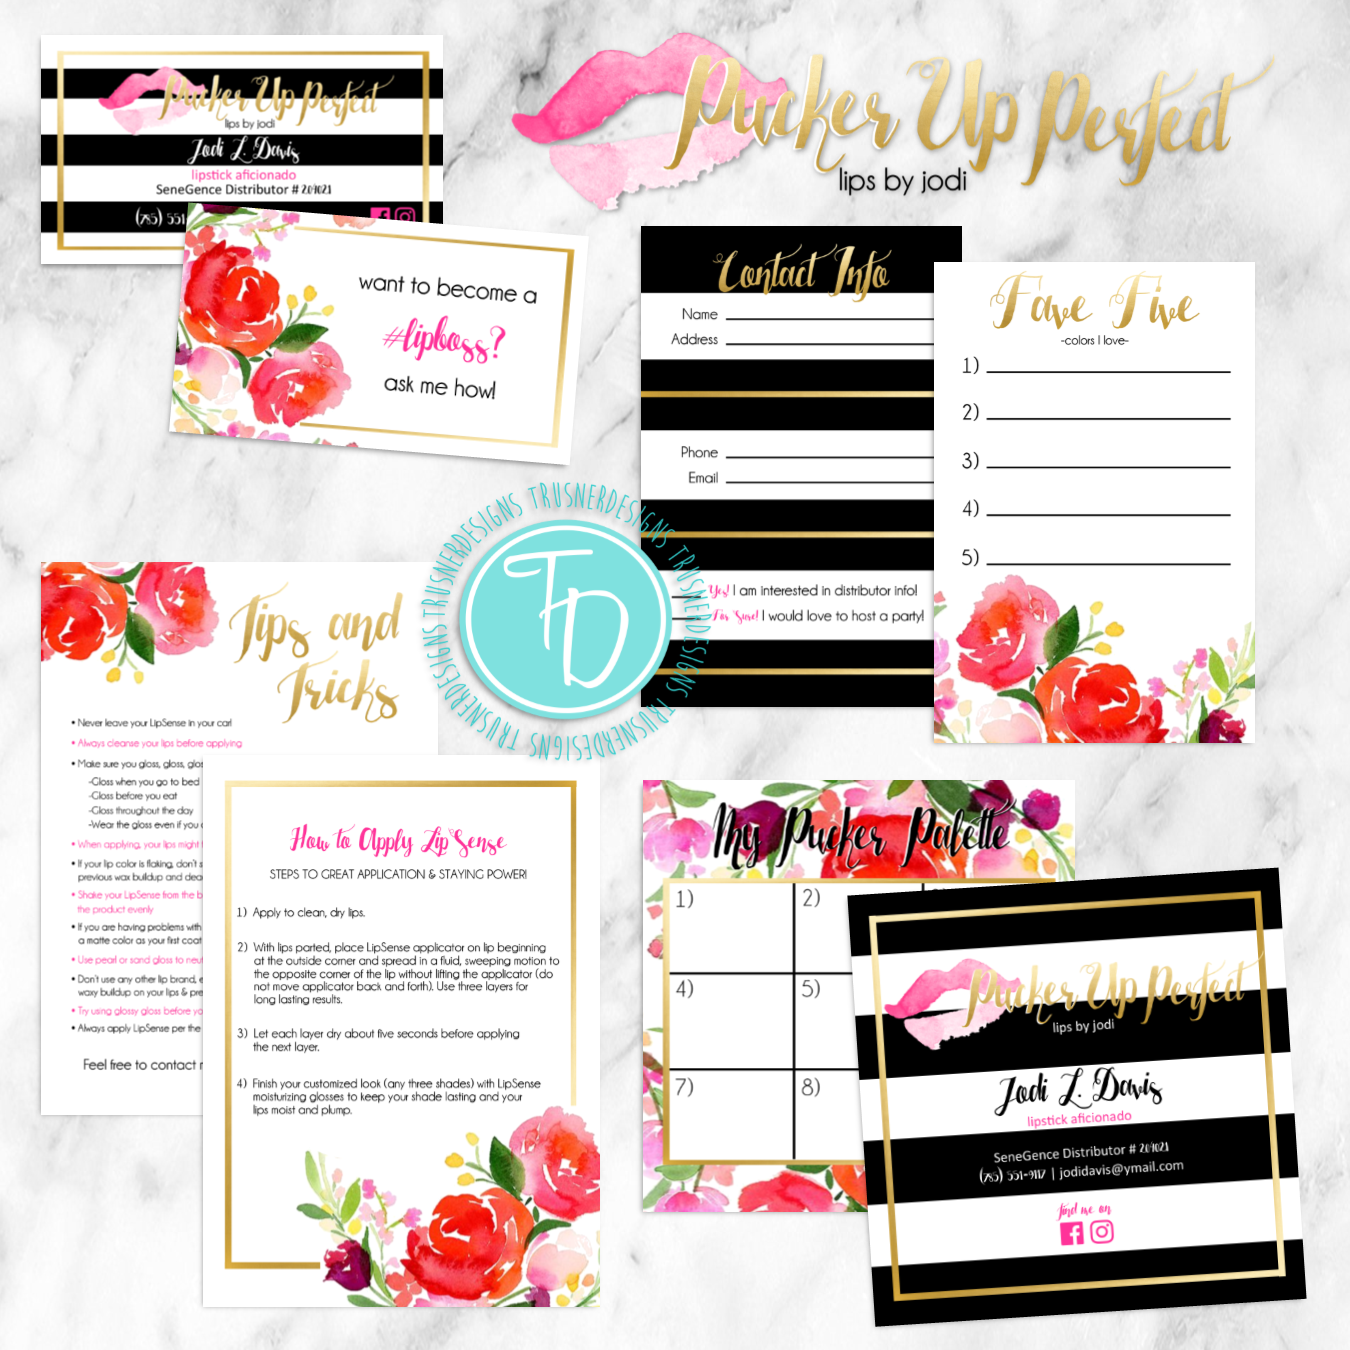 LipSense business cards and branding package by Trusner